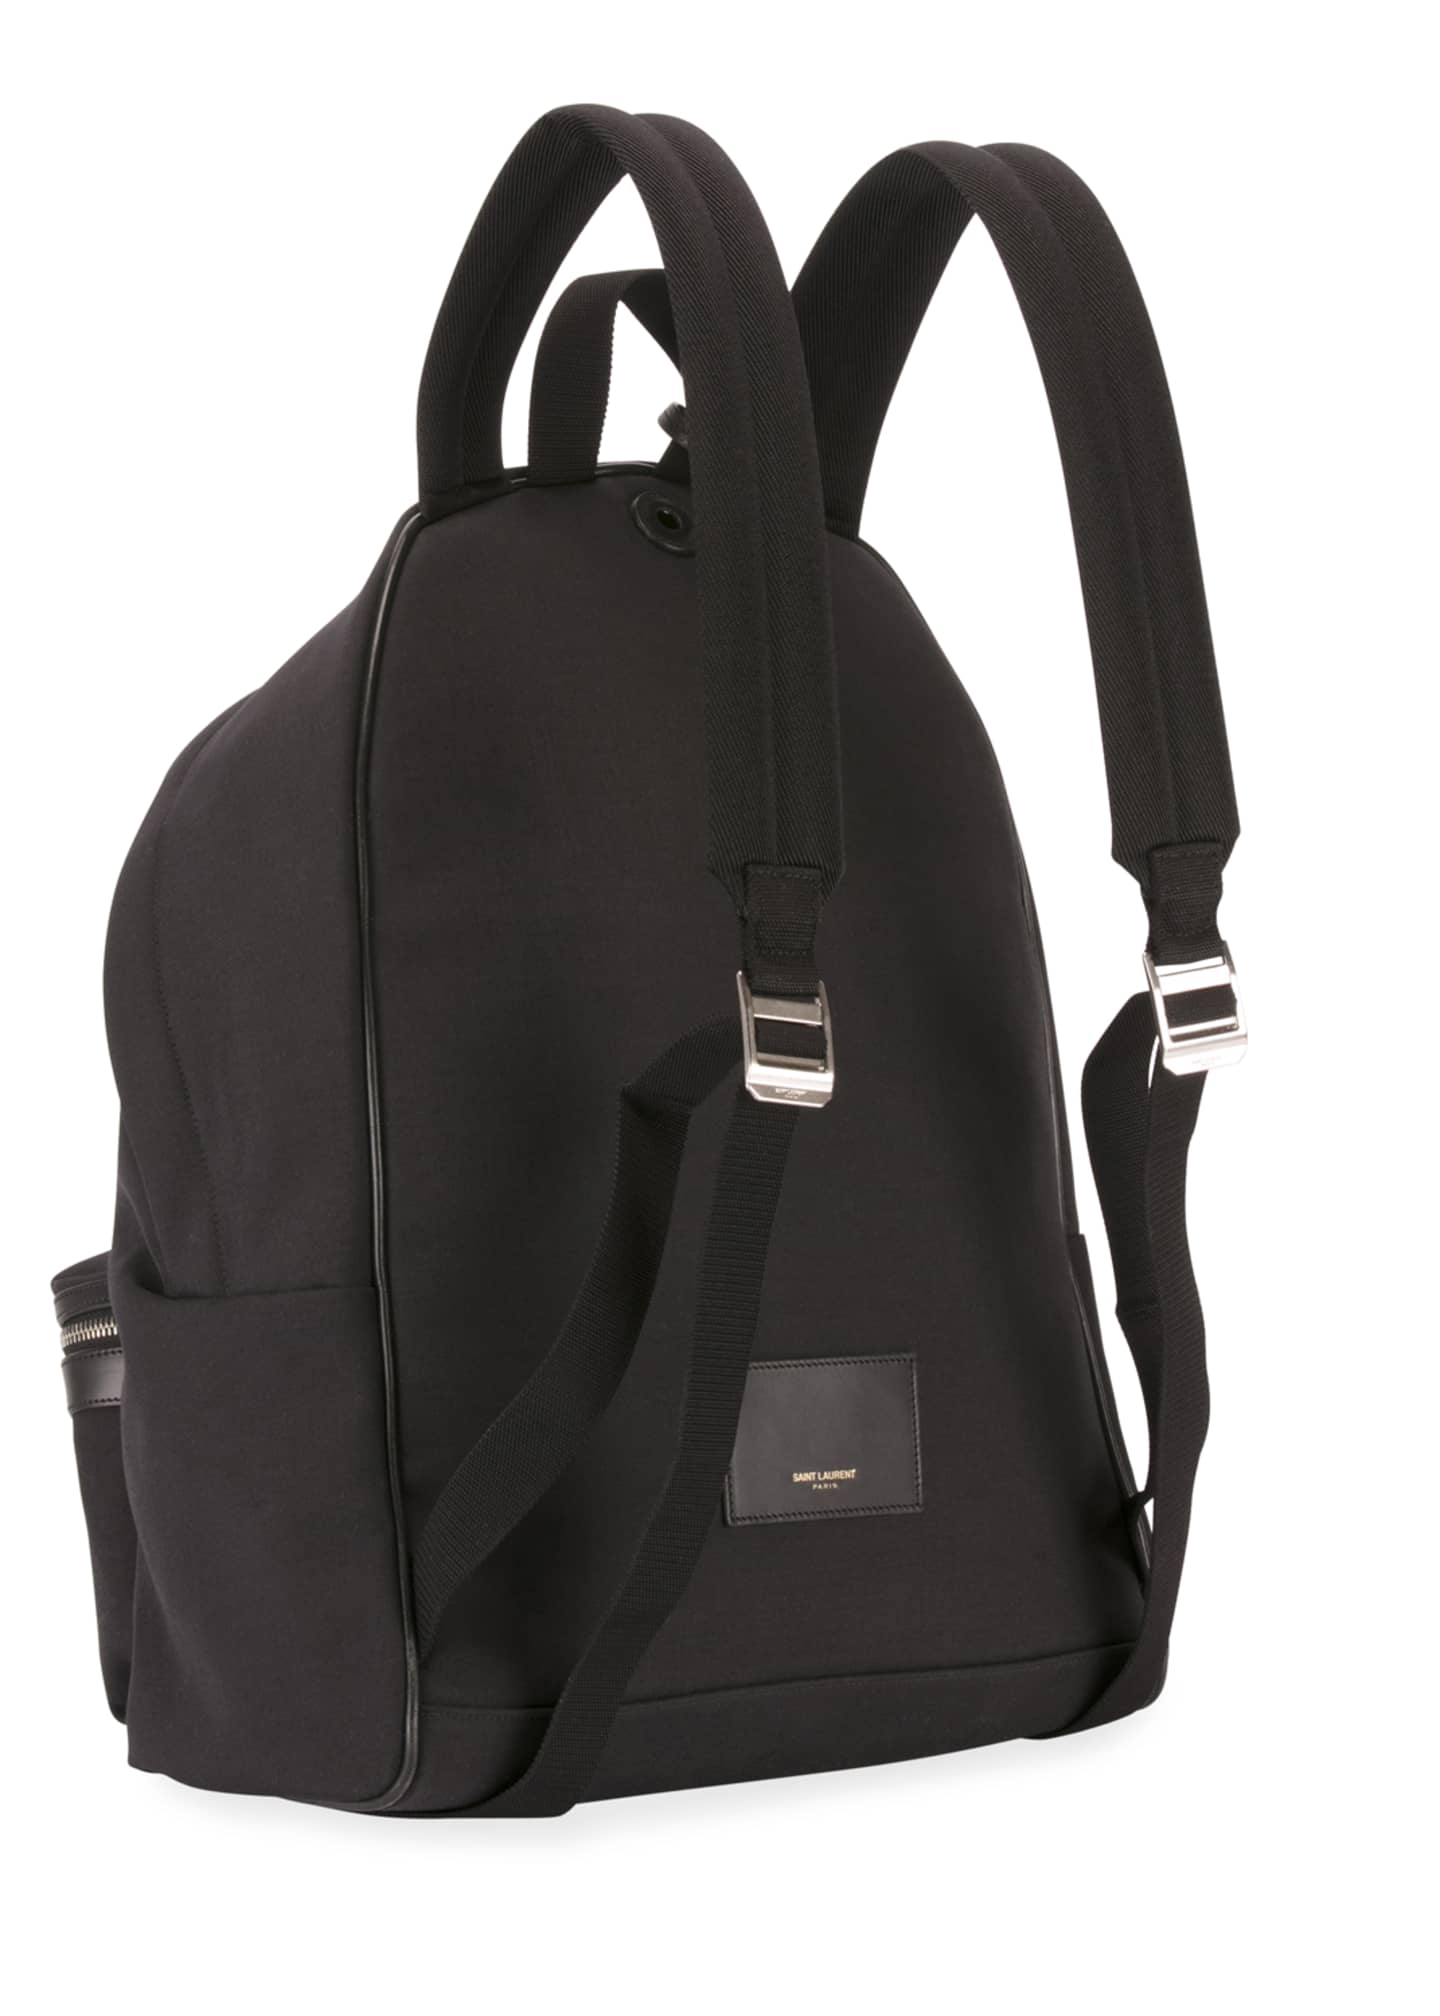 Image 2 of 2: Men's City Canvas Backpack